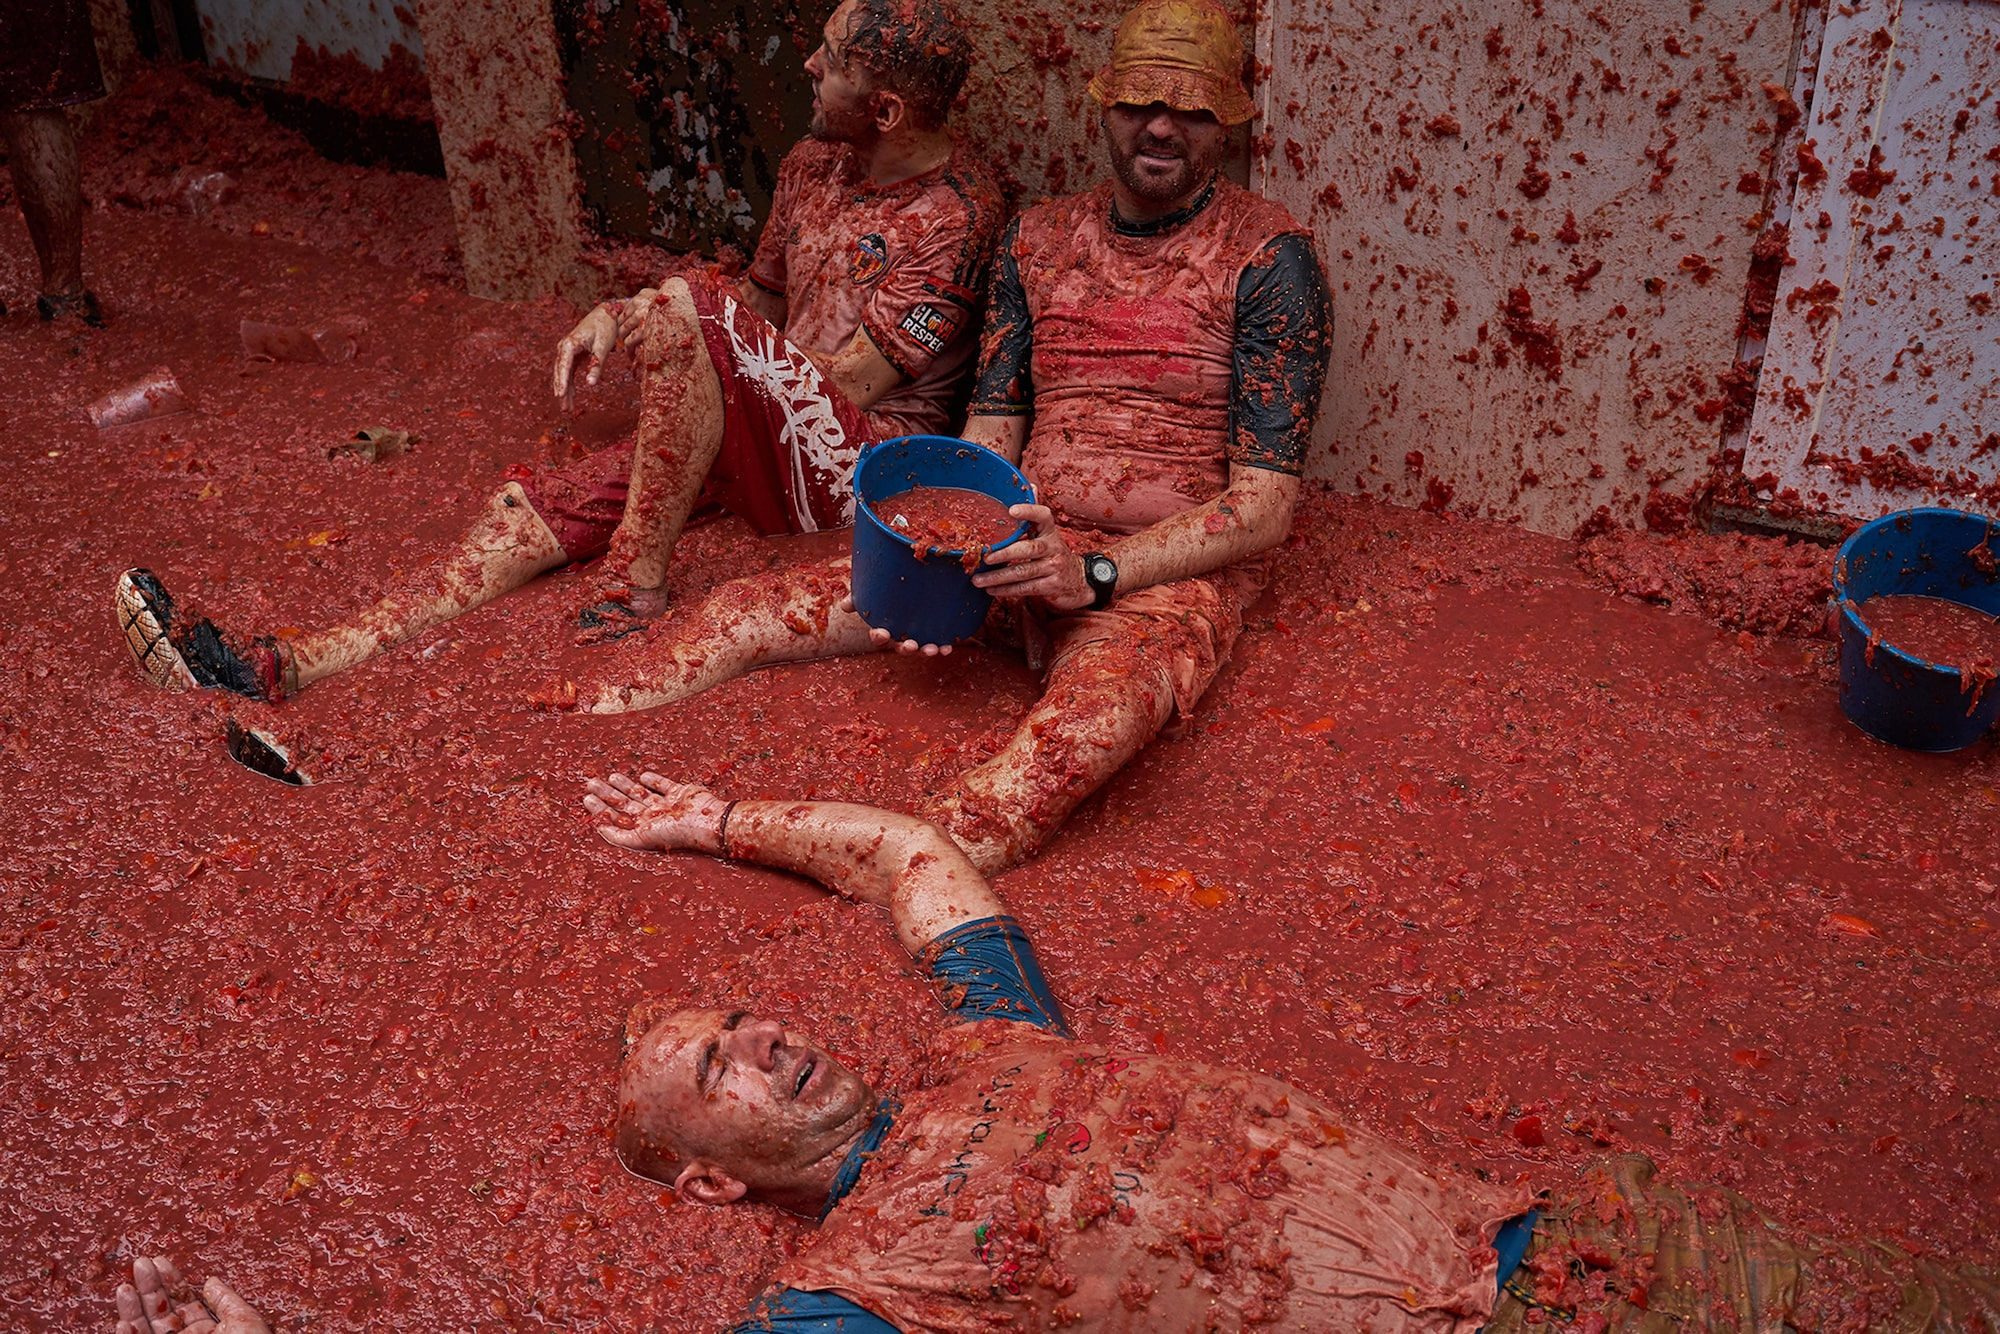 samuel aranda sony alpha 7RII revellers at the tomatina festival relax in pools of tomato remains